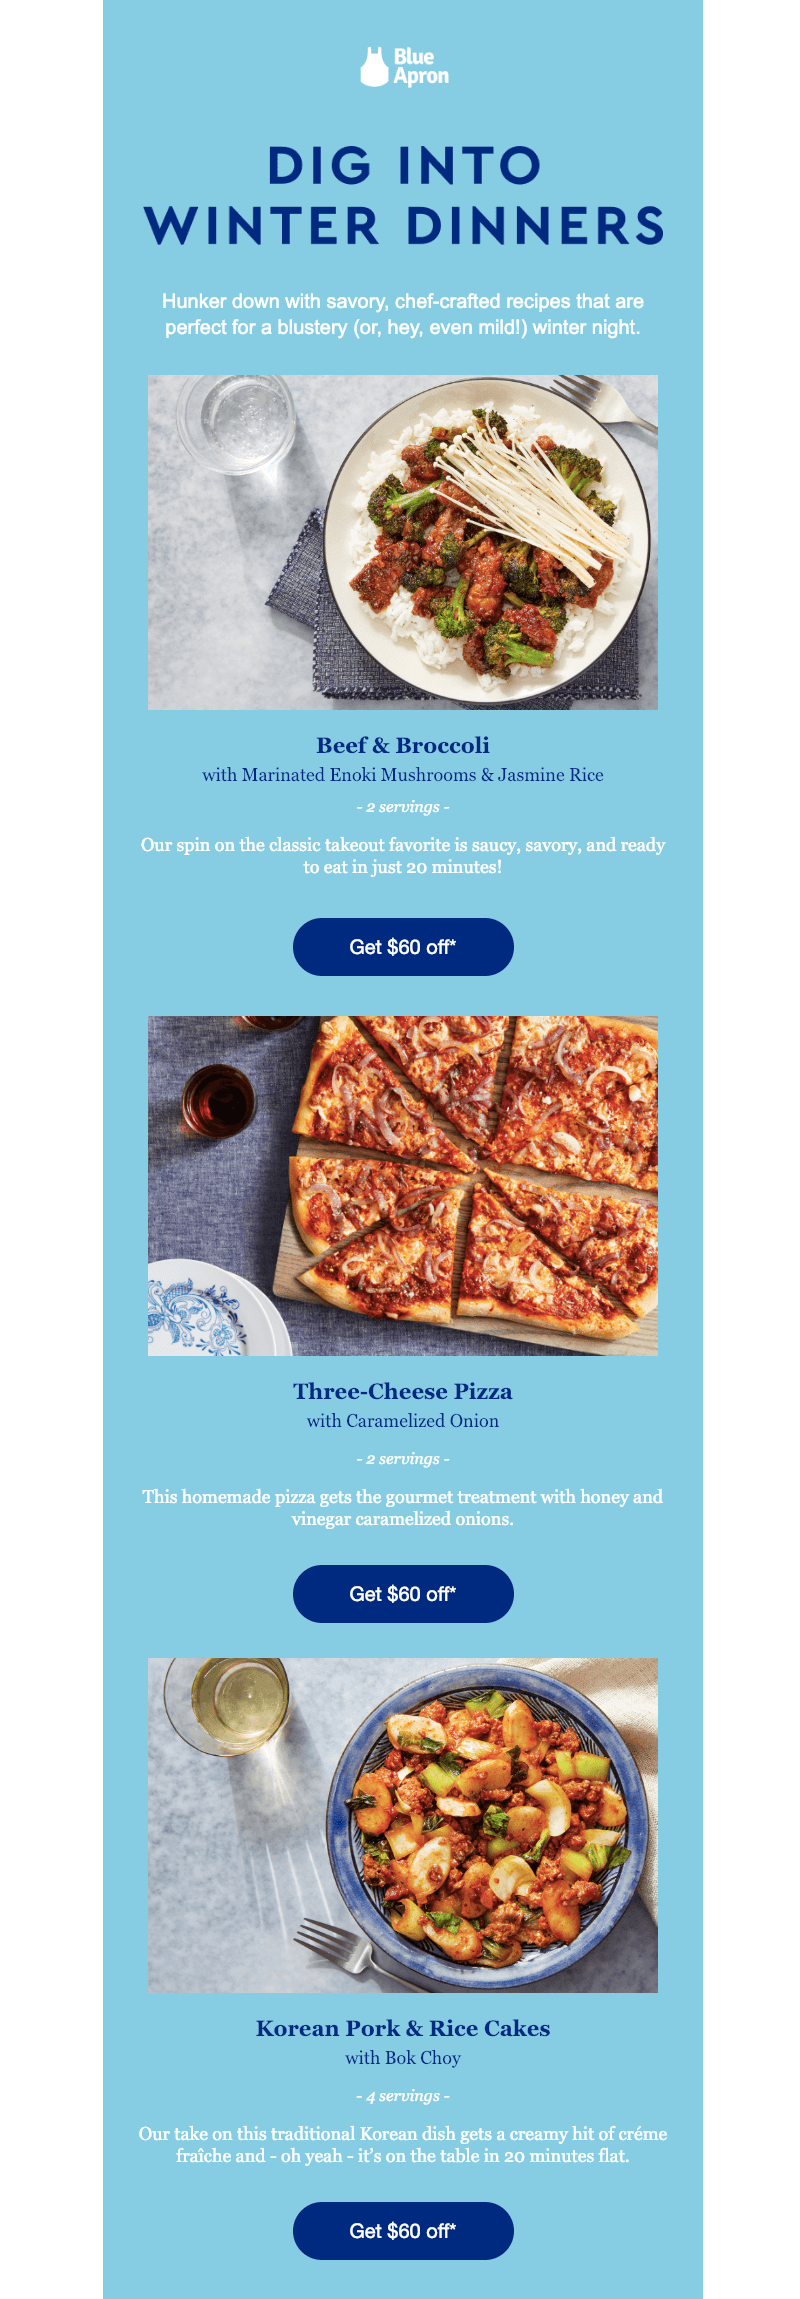 winter email inspiration by blue apron